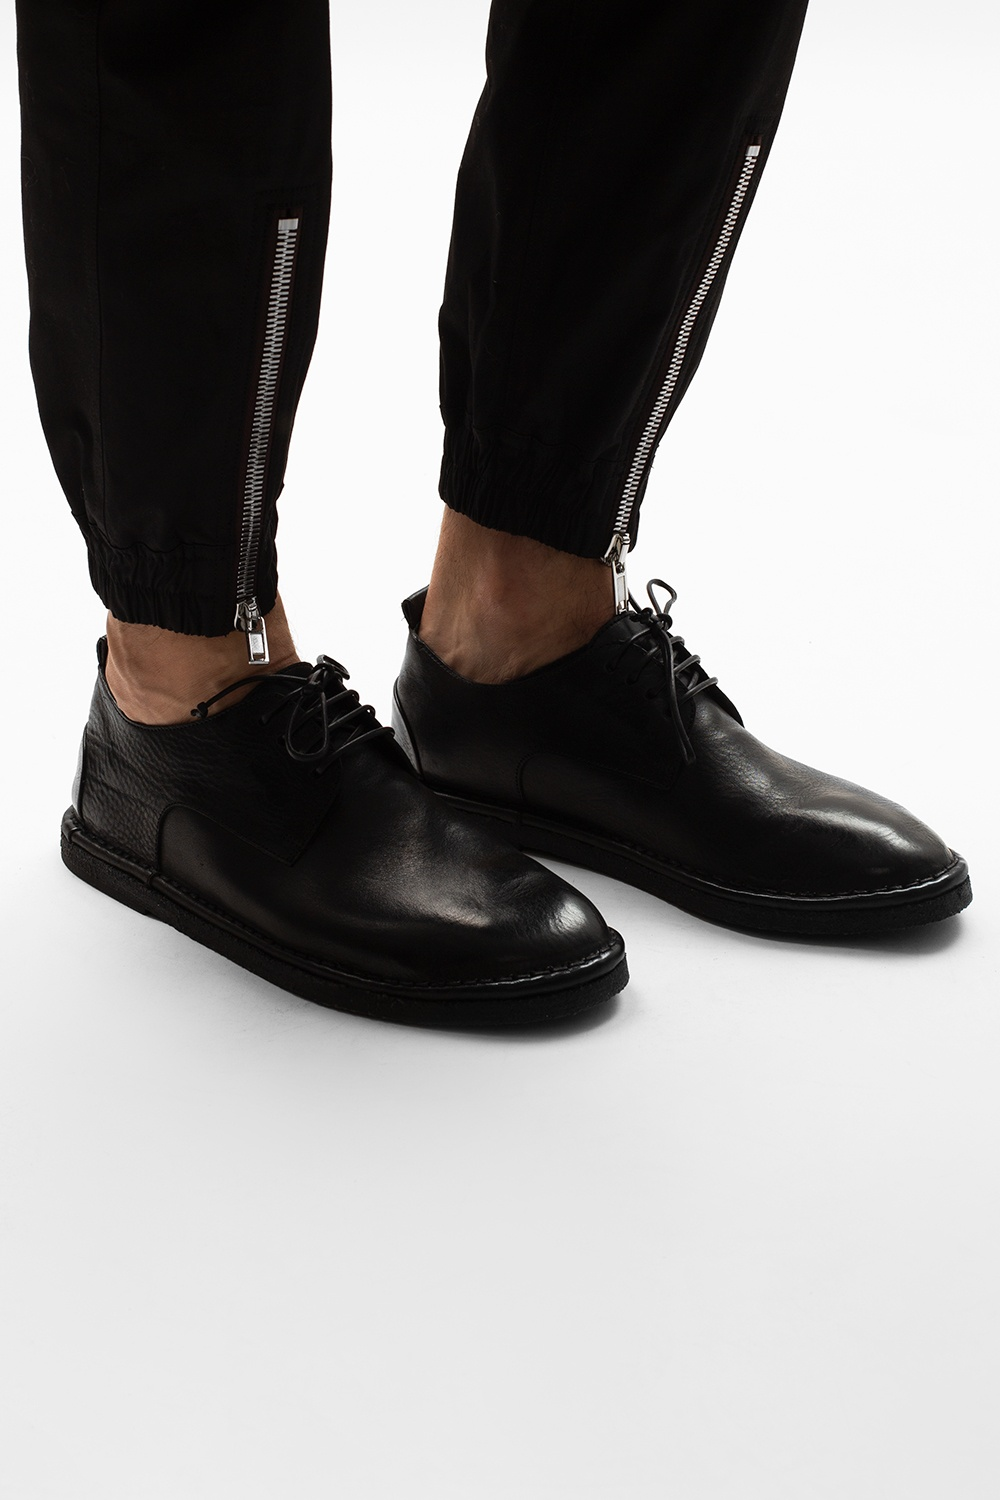 Marsell 'Parellara' derby shoes